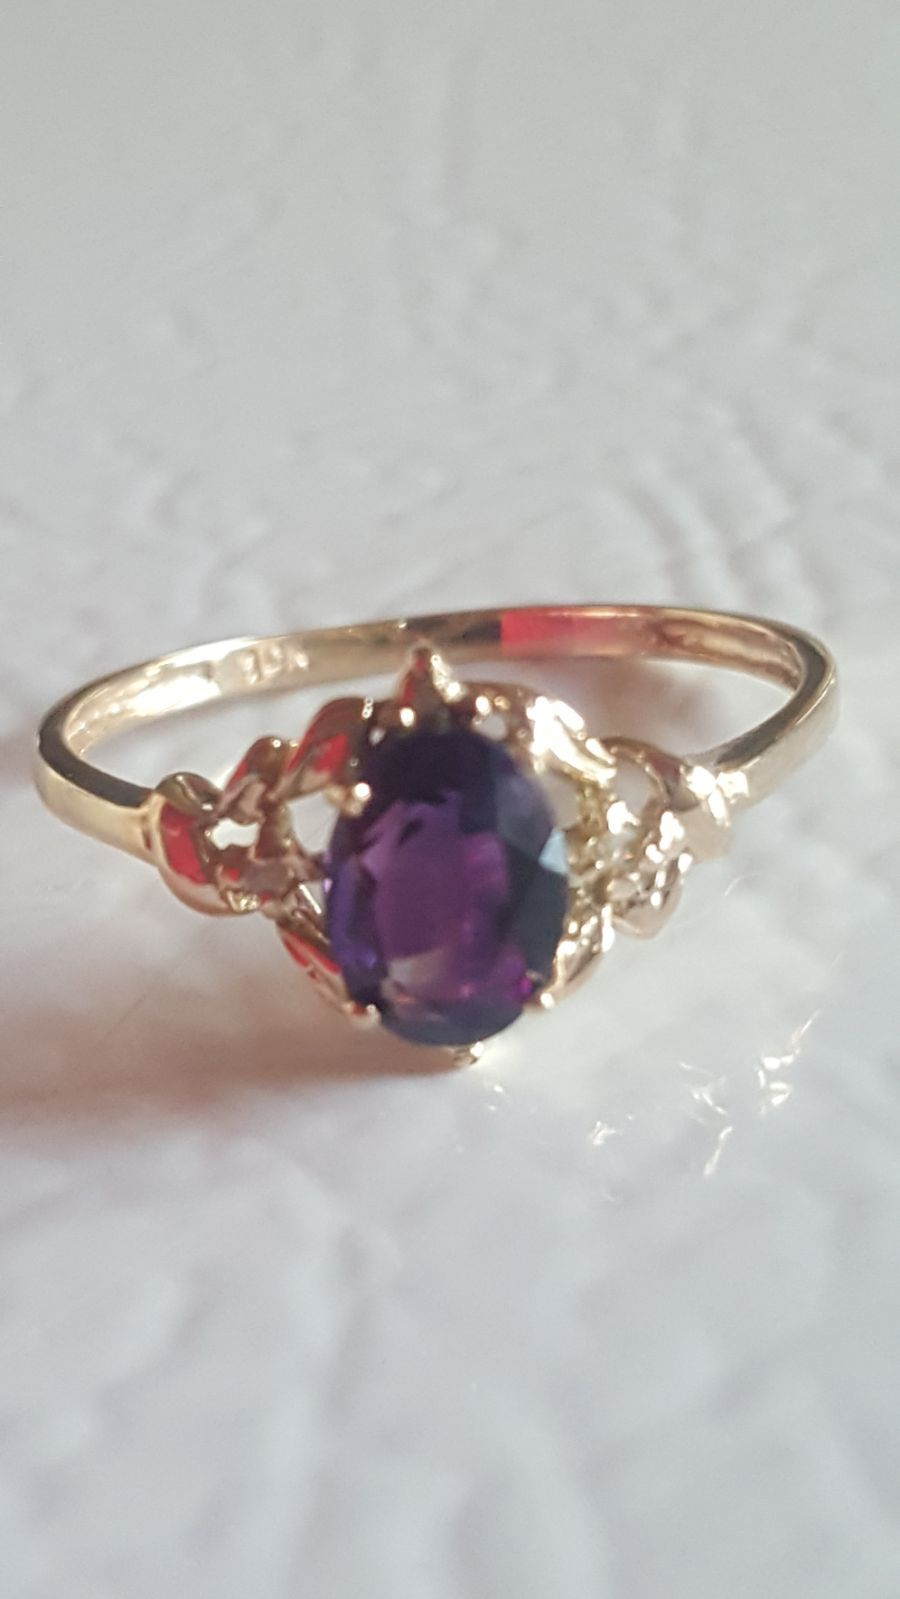 Price Is Firm Solid 10kt Gold Genuine Amethyst Natural Diamond Ring Size 7 25 0 8 Carats Deep Purpl Amethyst And Diamond Ring Amethyst Jewelry Ring 10kt Gold